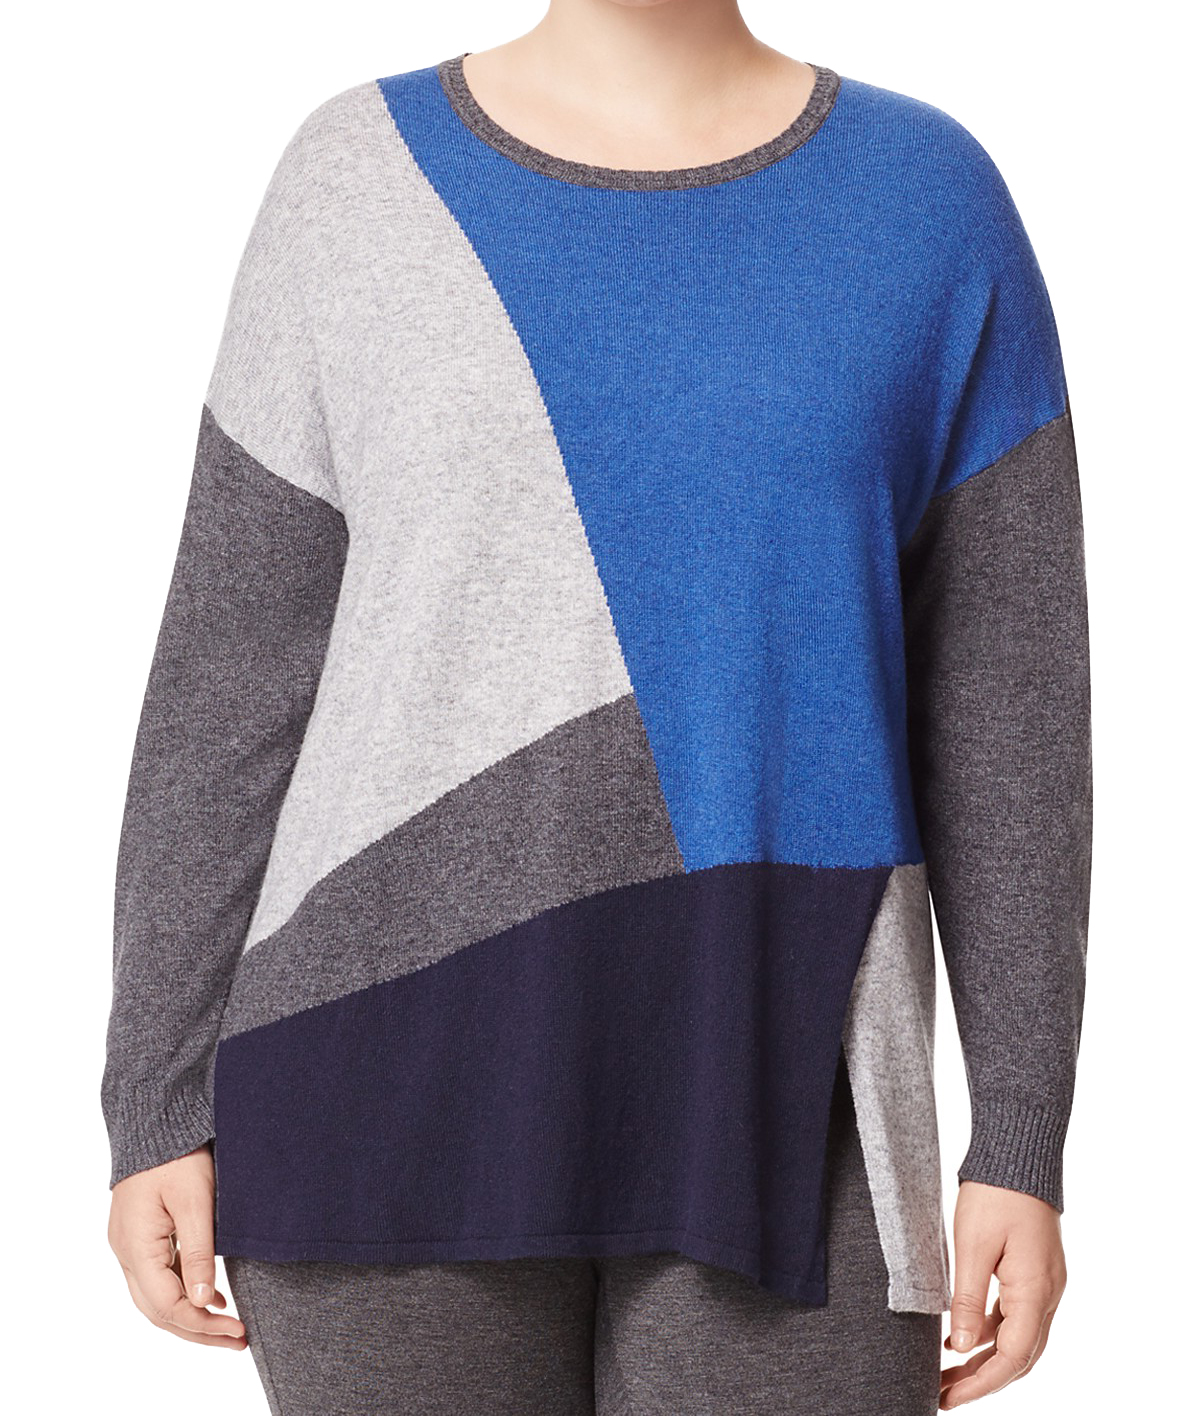 MARINA RINALDI Women/'s Multi Alassio Colorblock Sweater $295 NWT